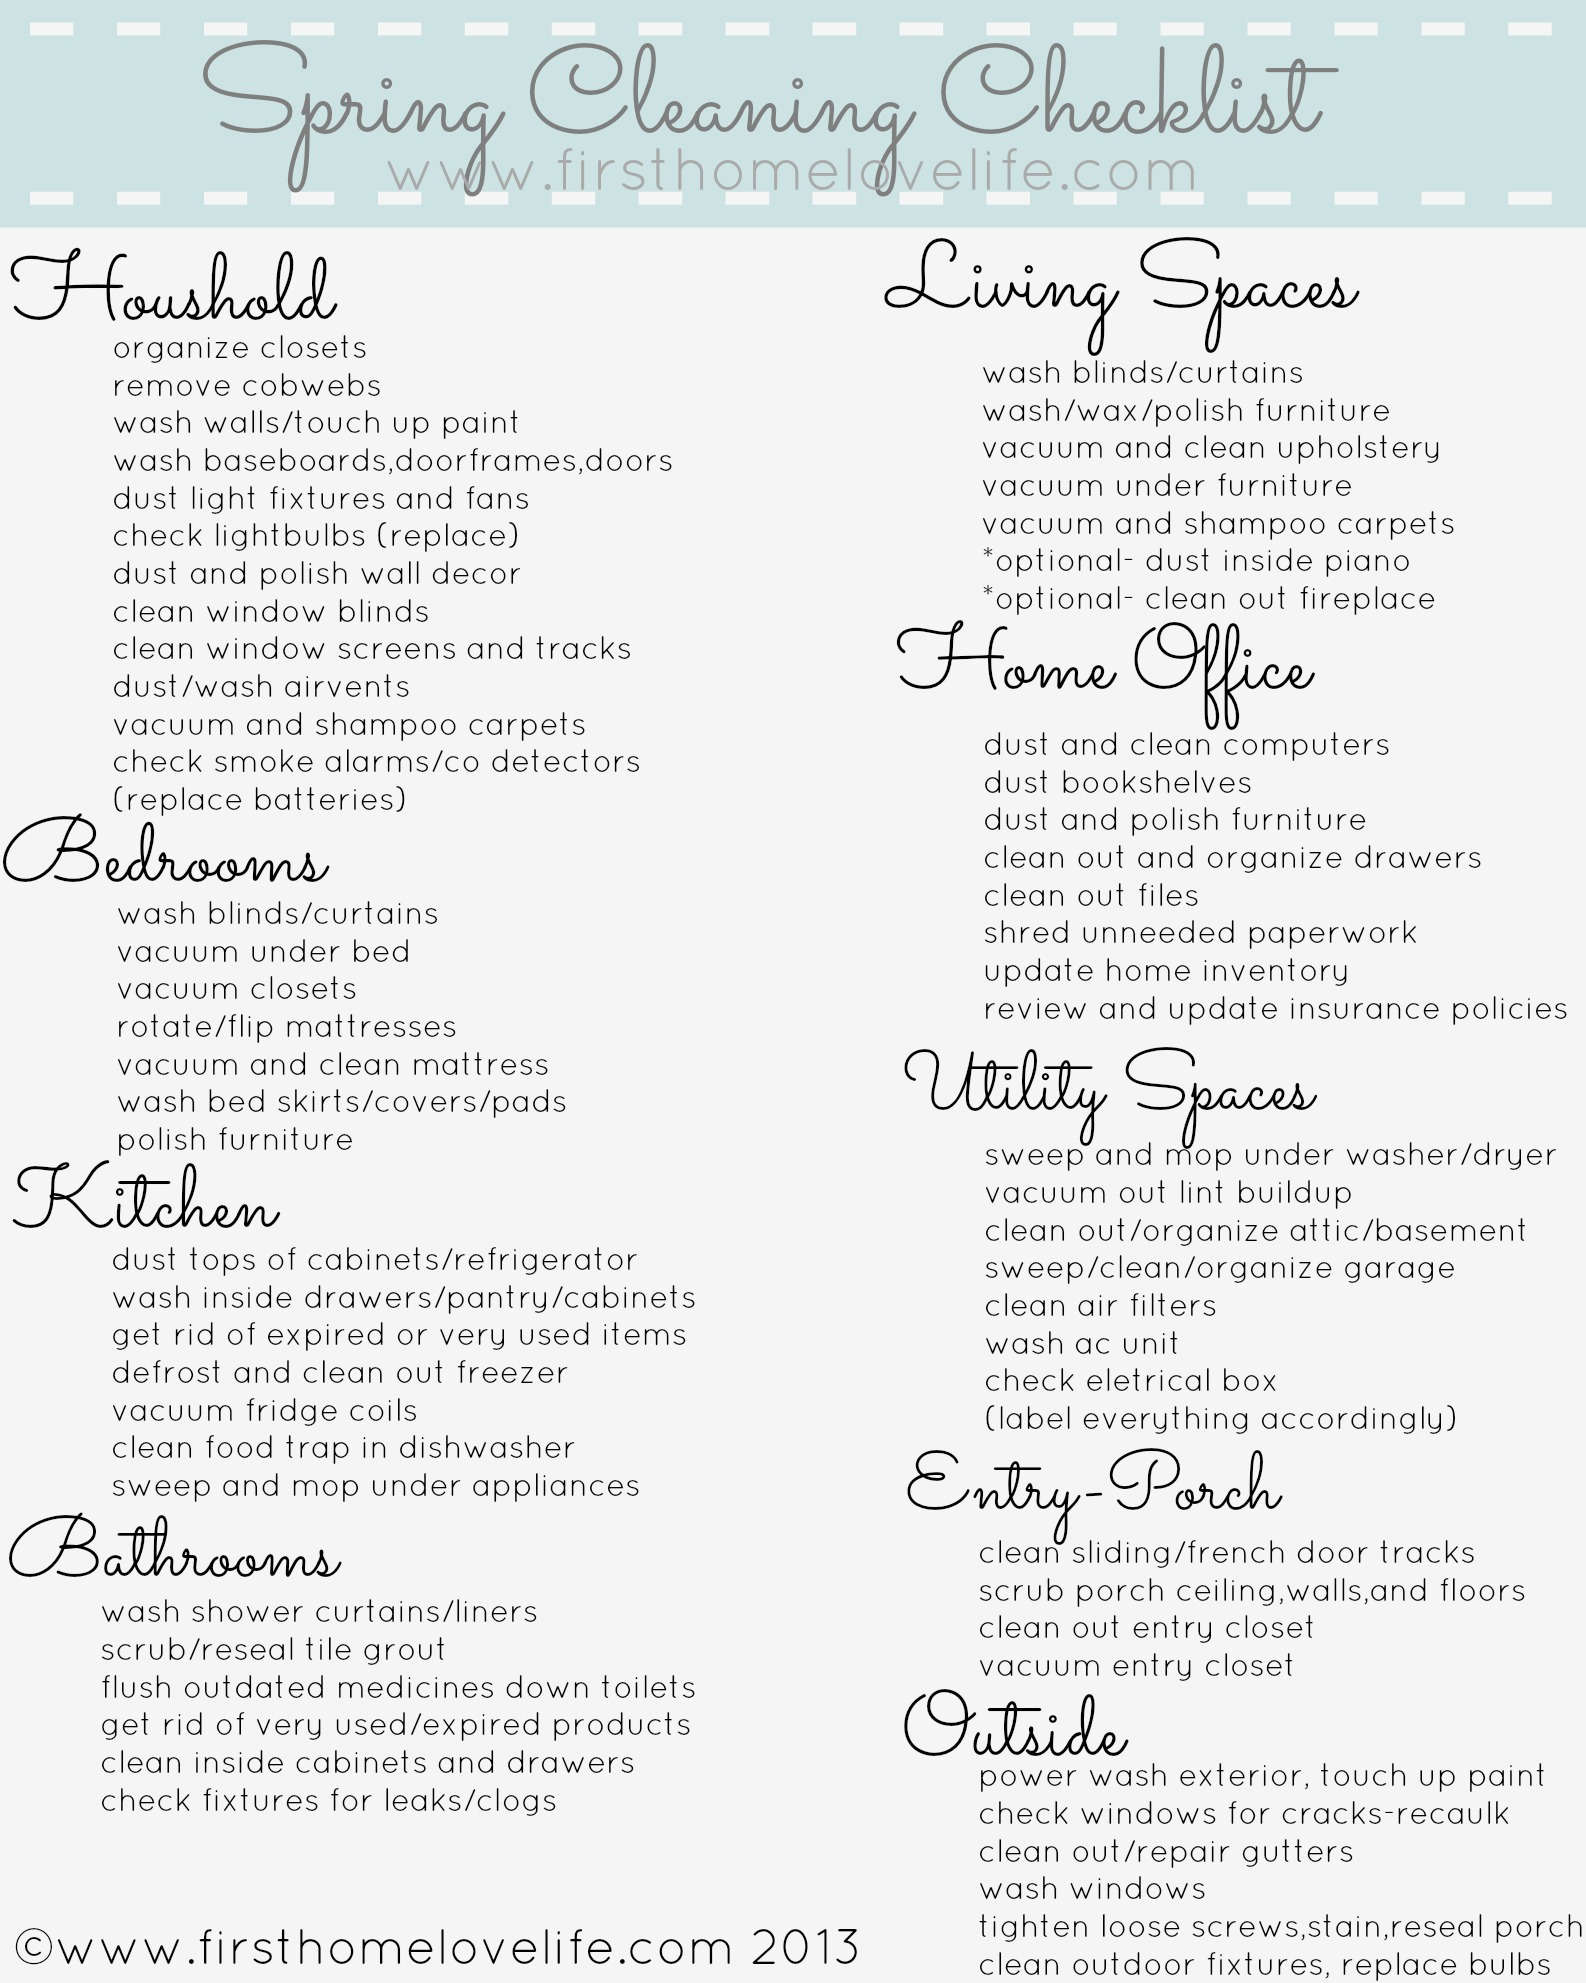 Spring Cleaning Checklist spring cleaning printable checklist - first home love life